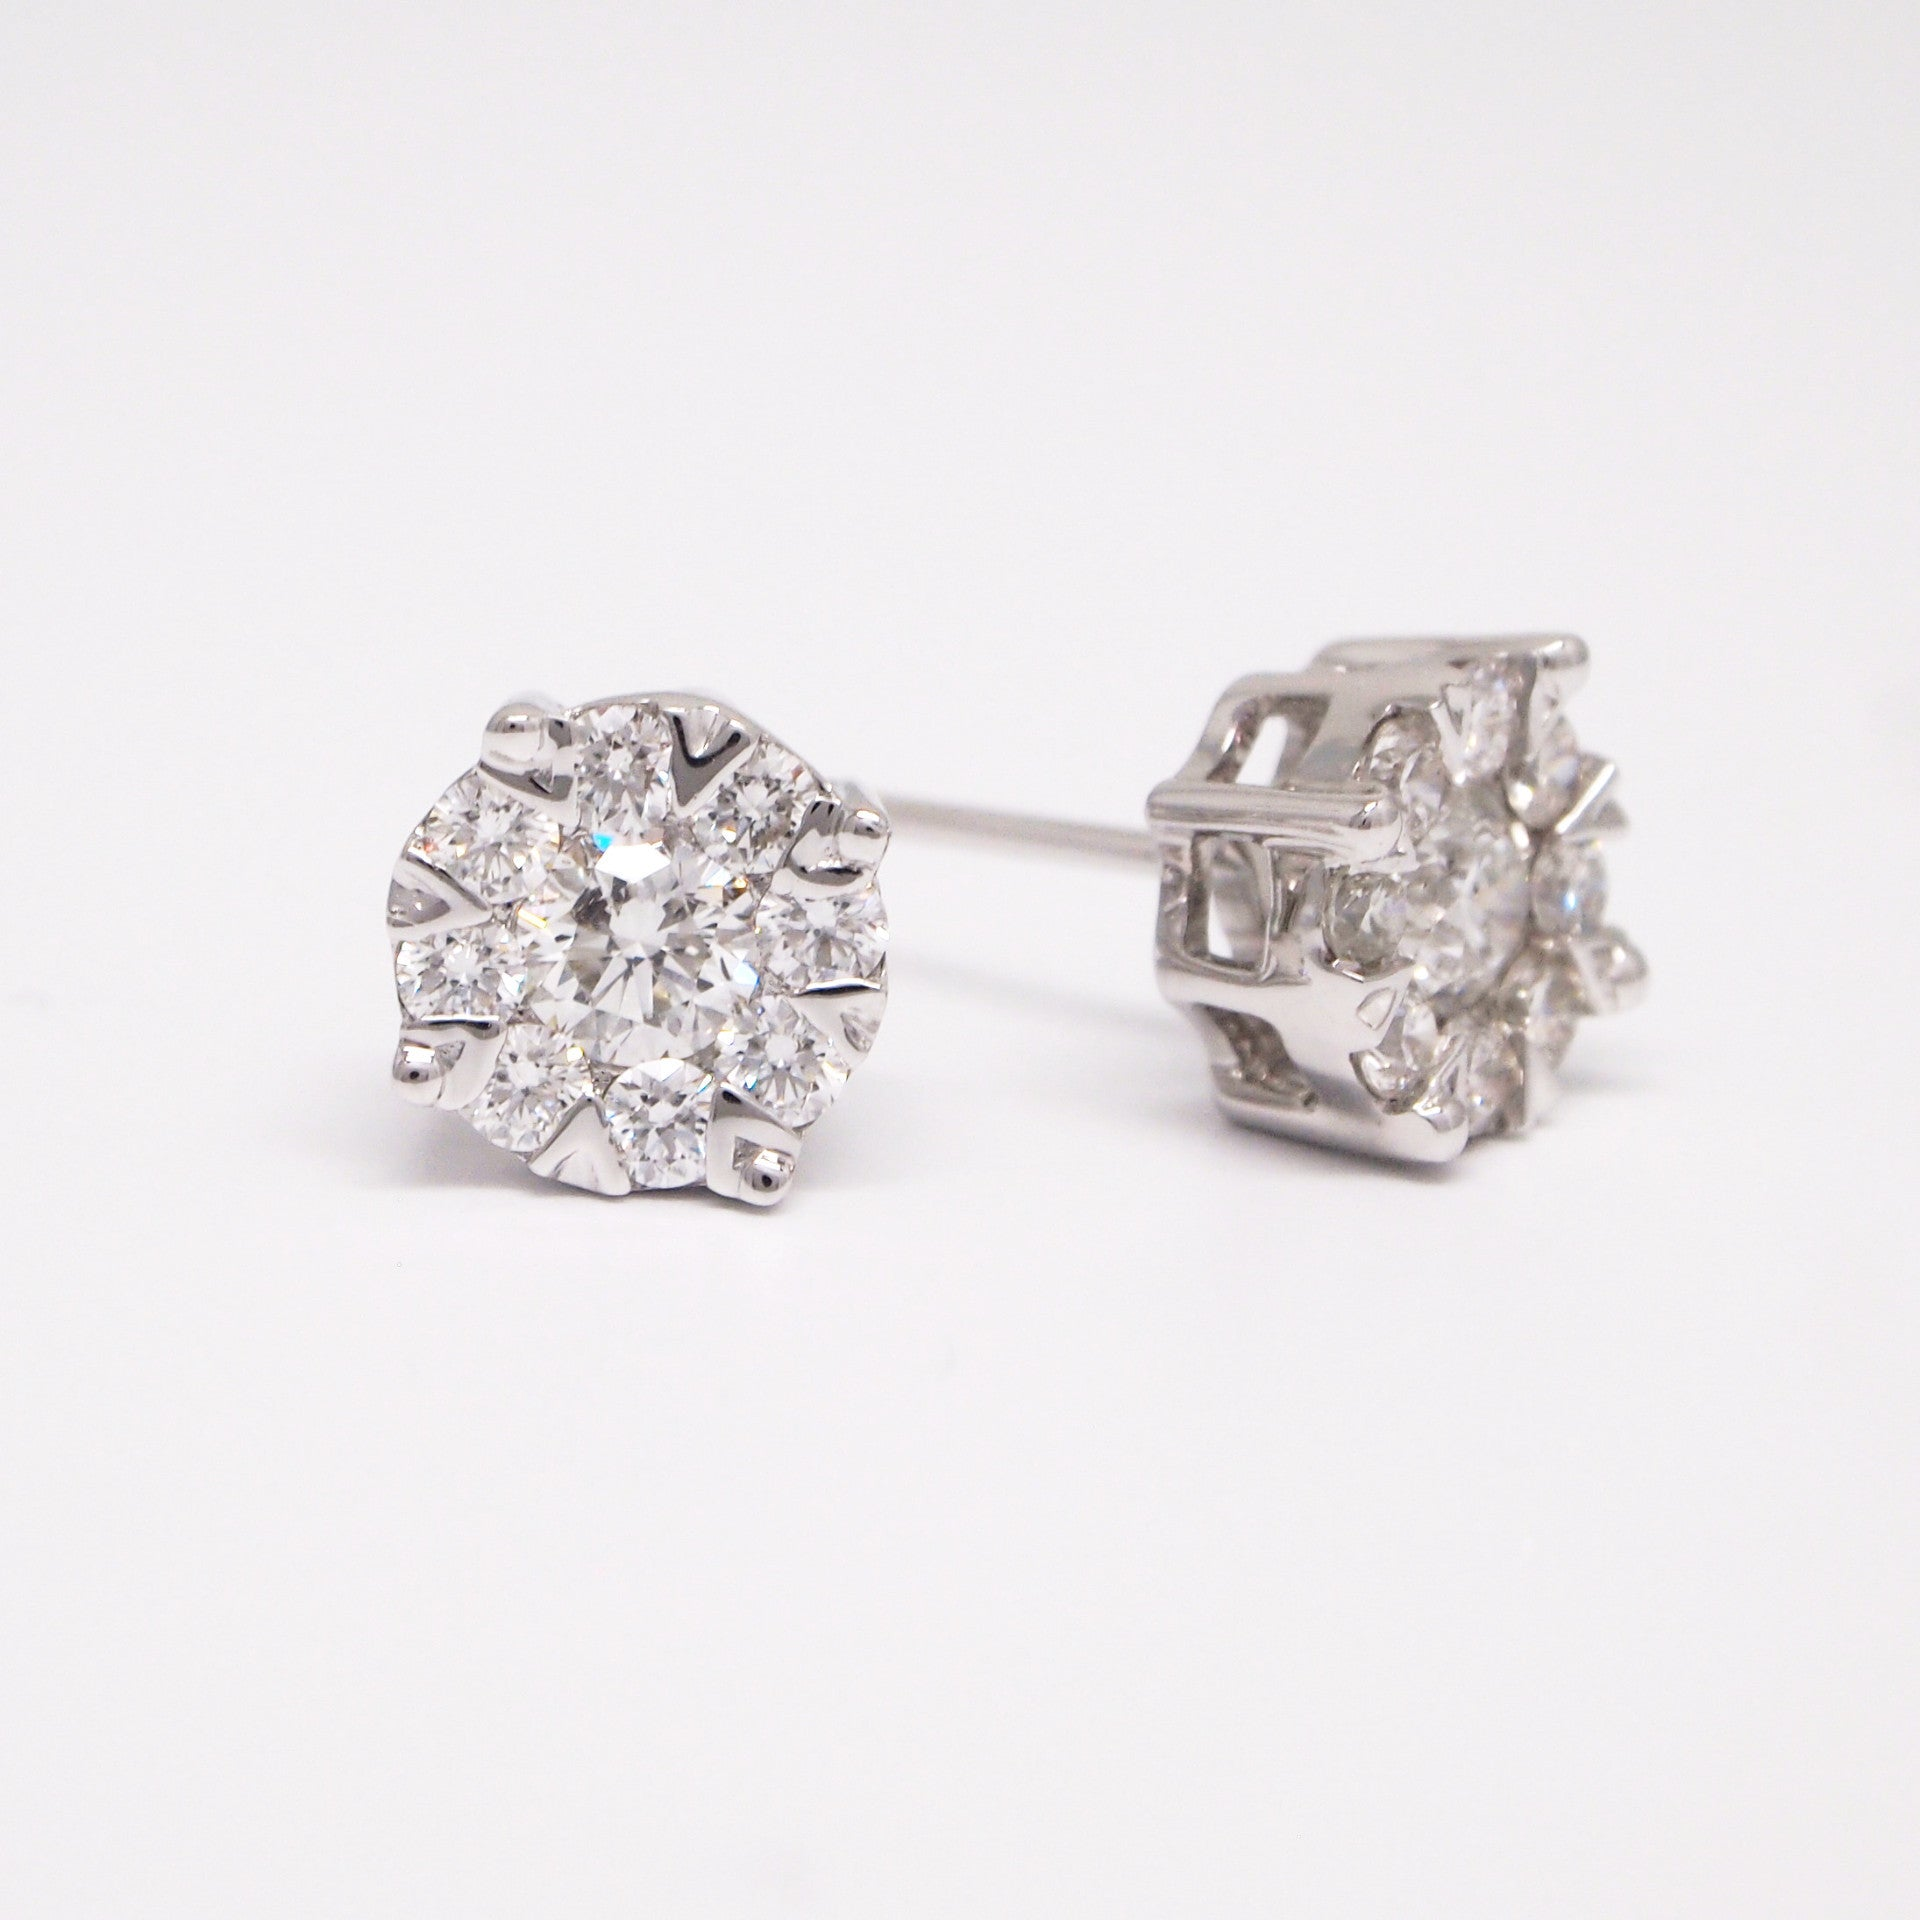 287c4ad14ee9d 14K White Gold Invisible Set Diamond Earring Studs - Judith Arnell ...